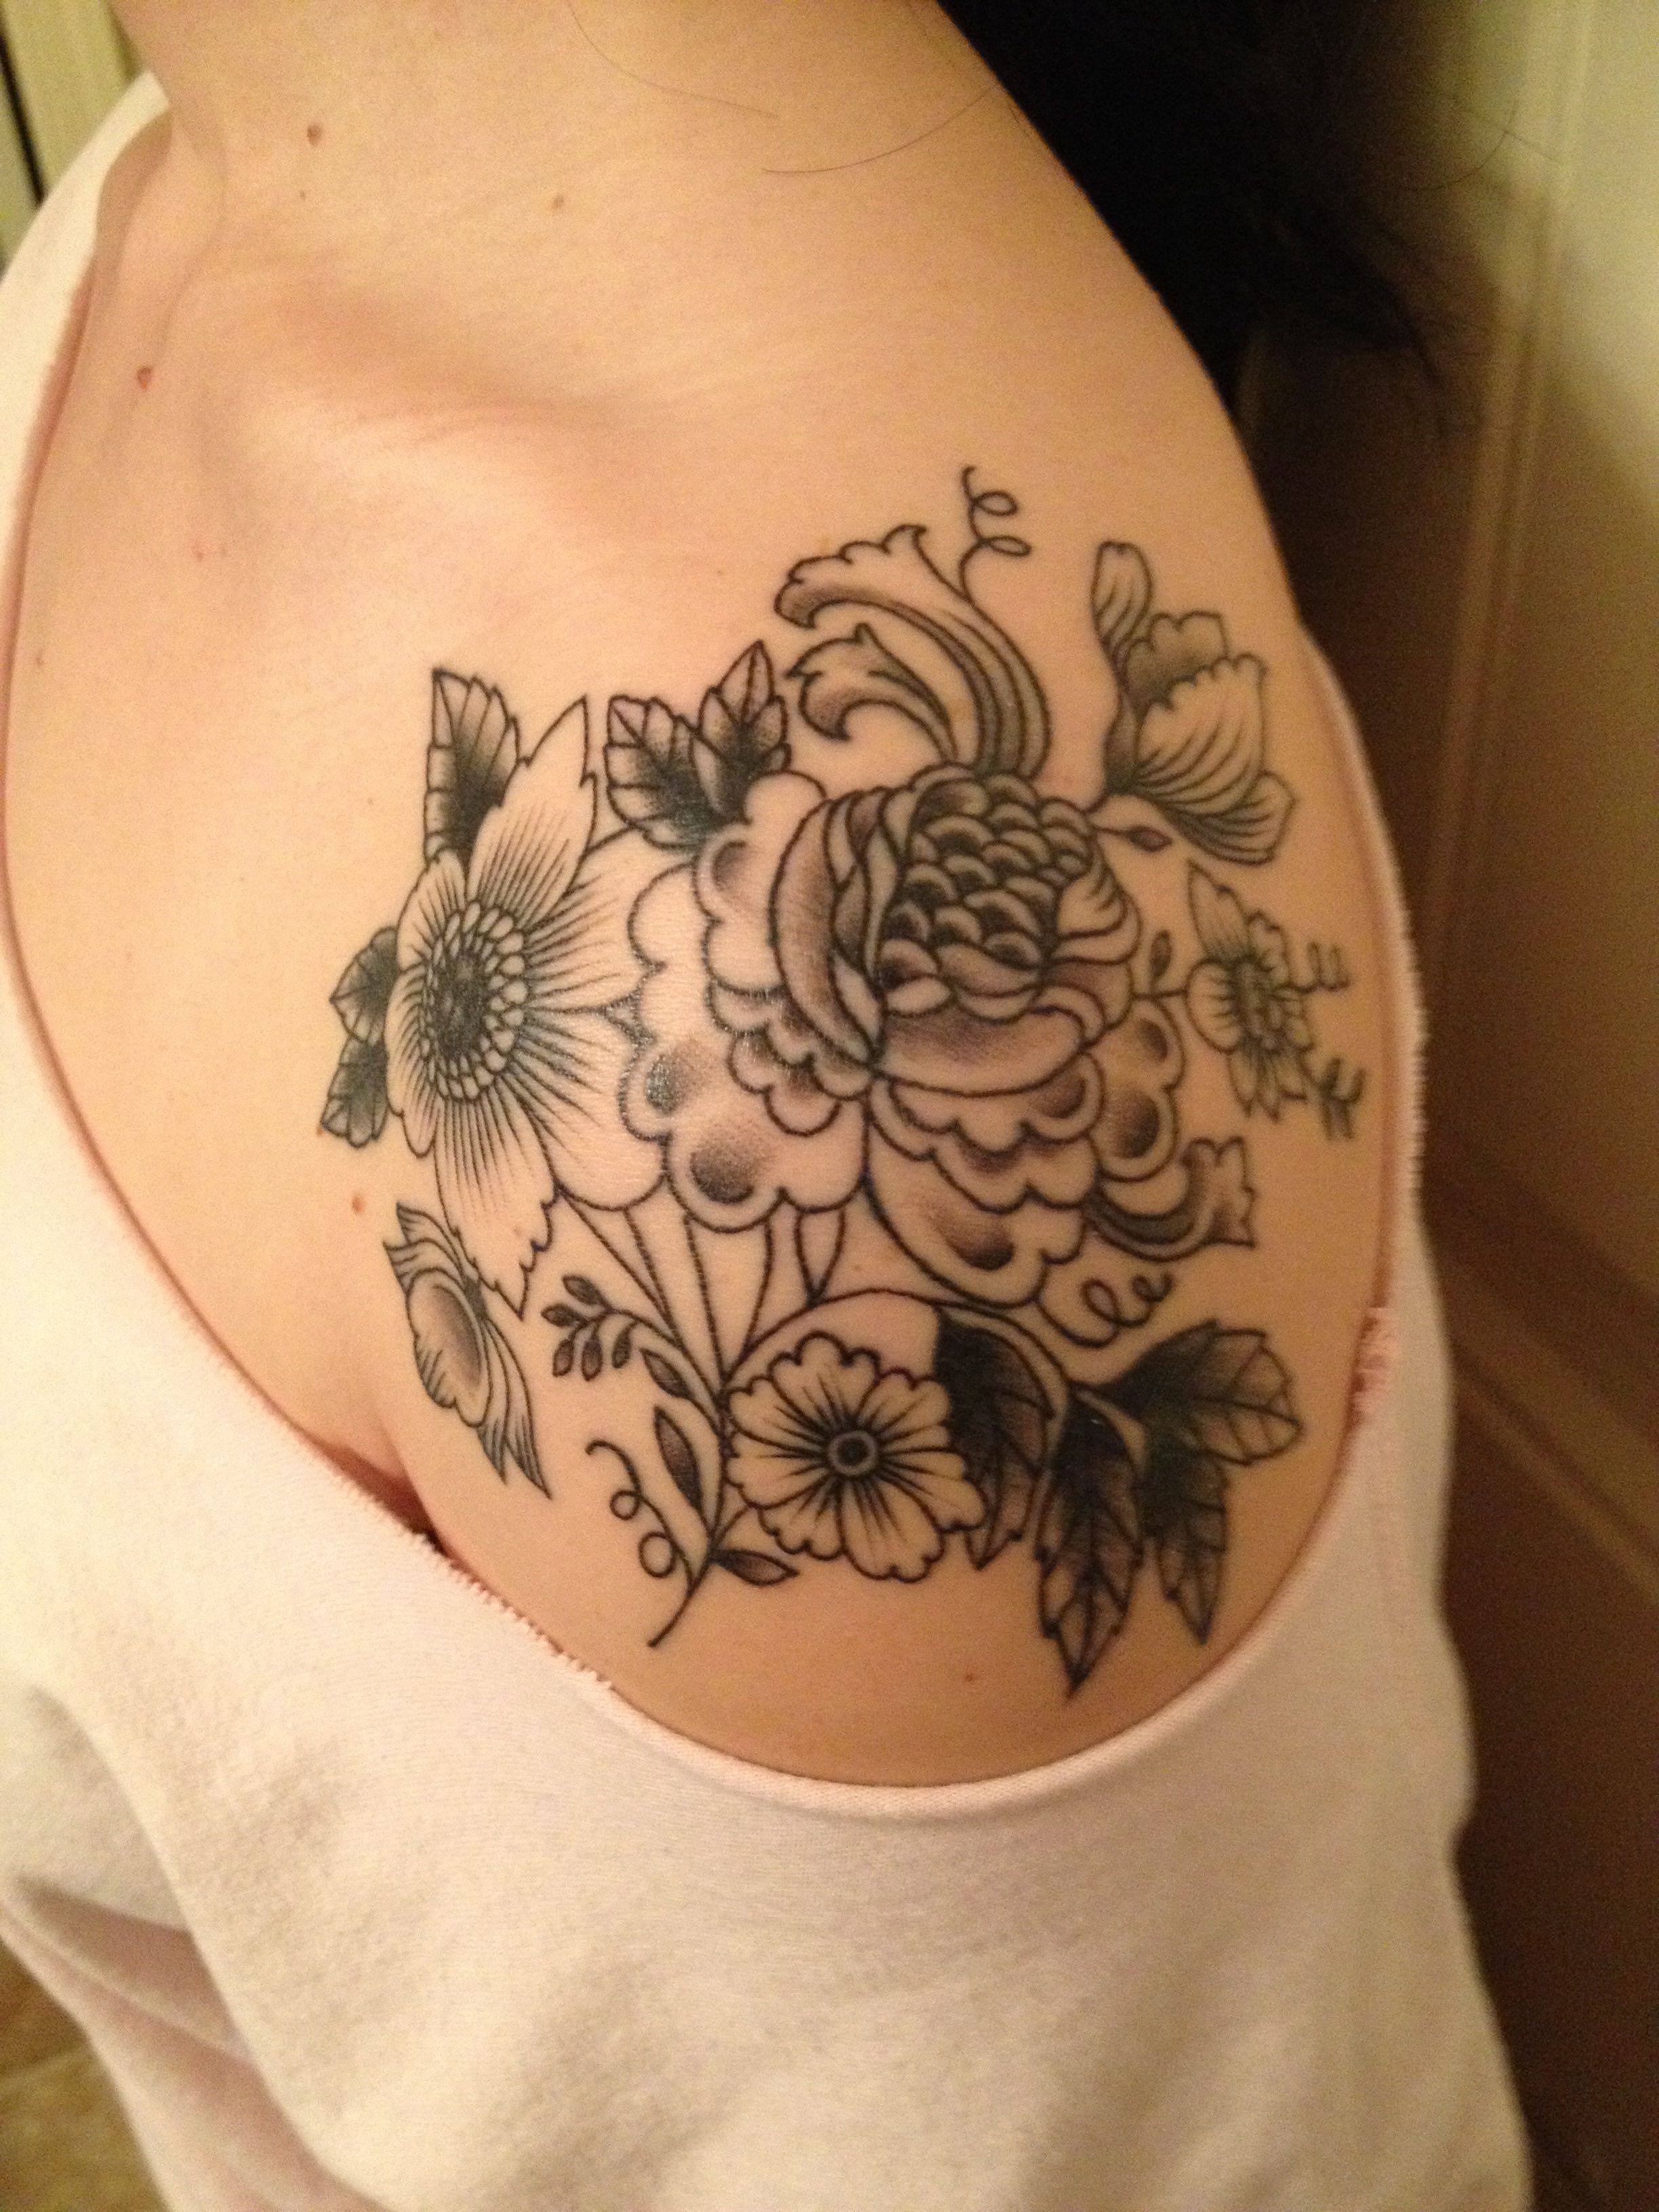 Shoulder tattoo Love the placement swap the flowers out for the style of ro